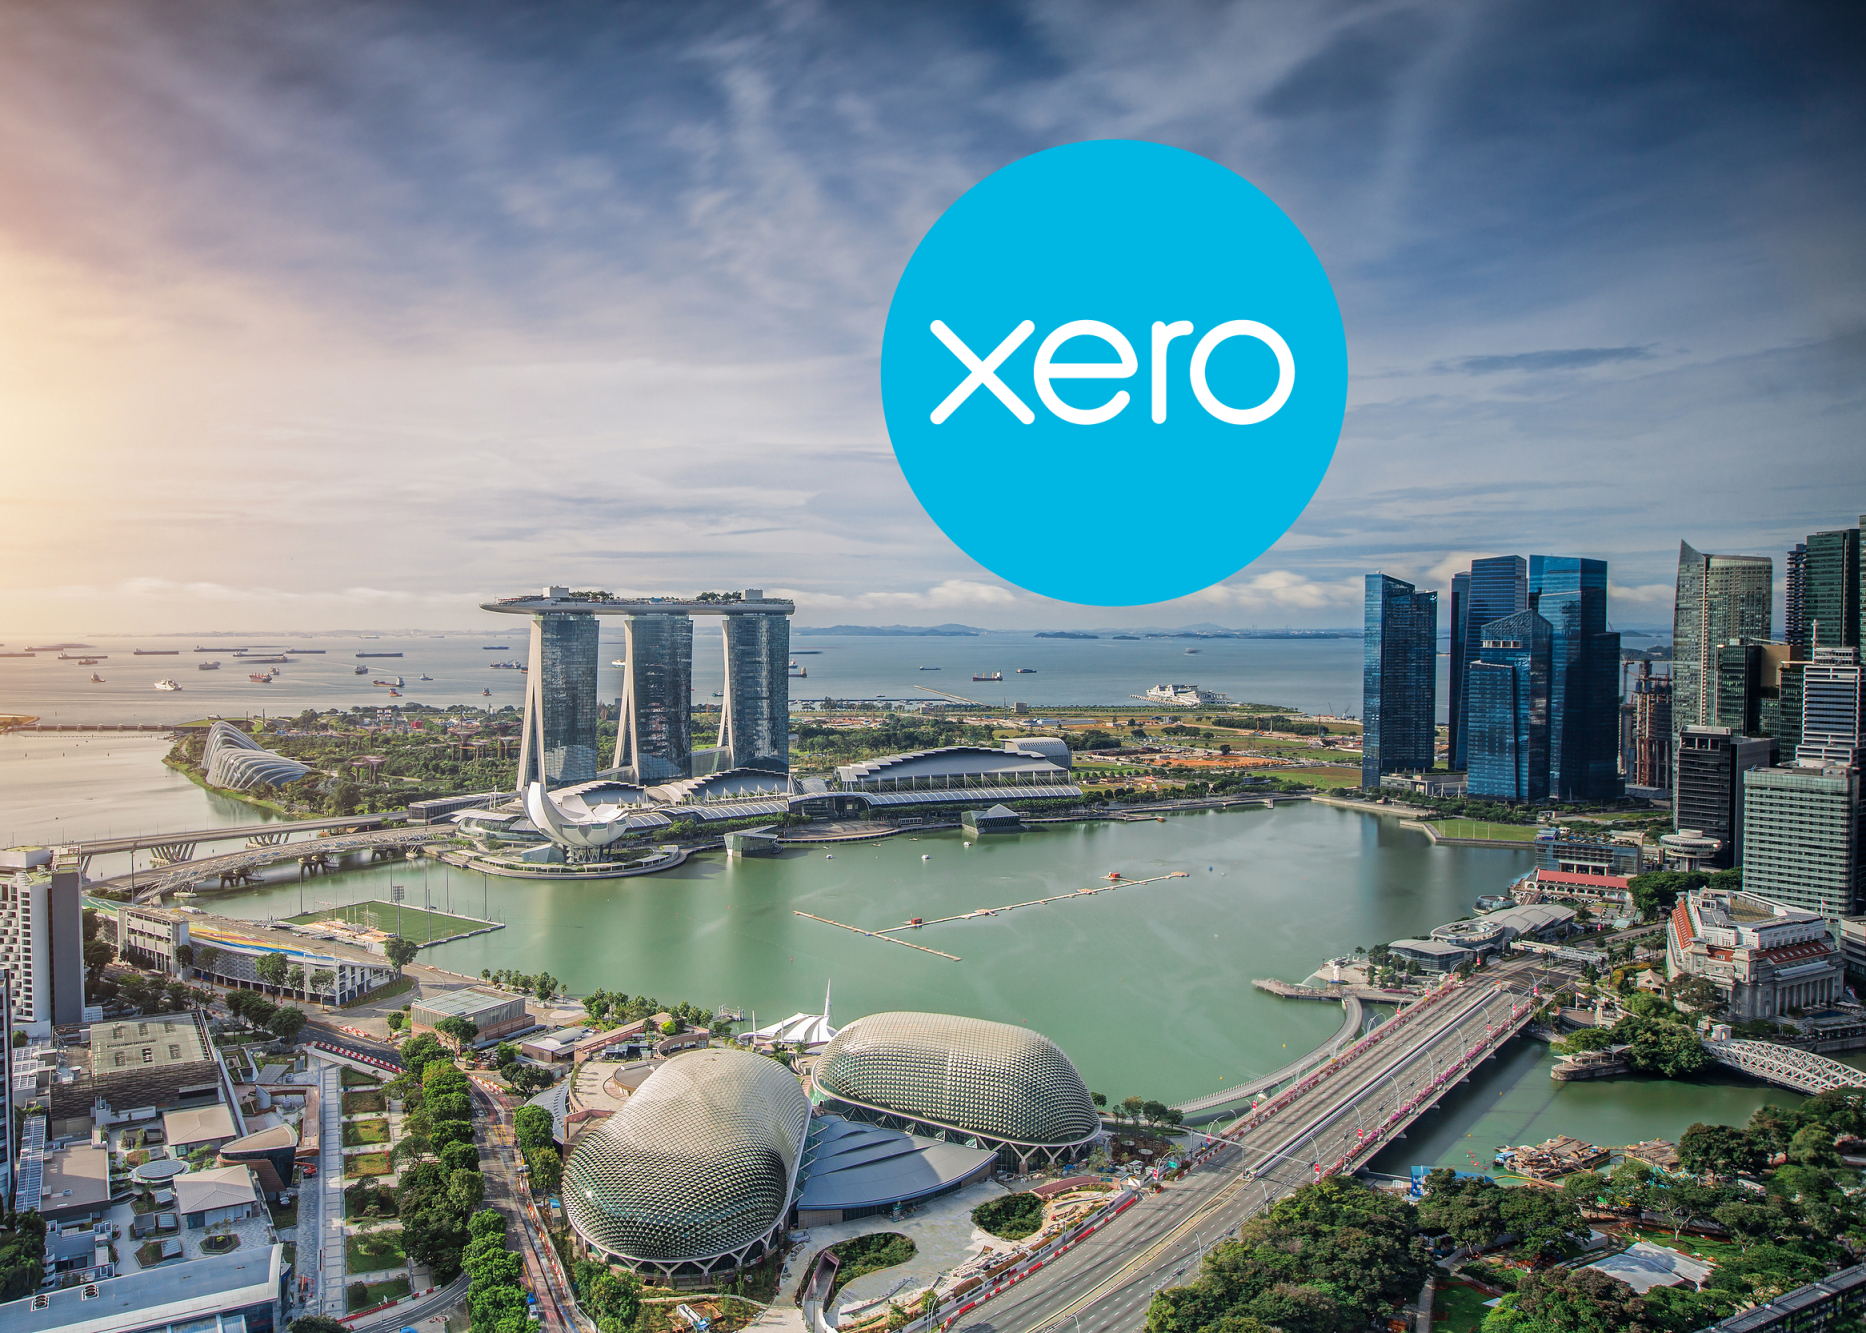 Xero's first Asian roadshows will help grow both its market and the Xero ecosystem.